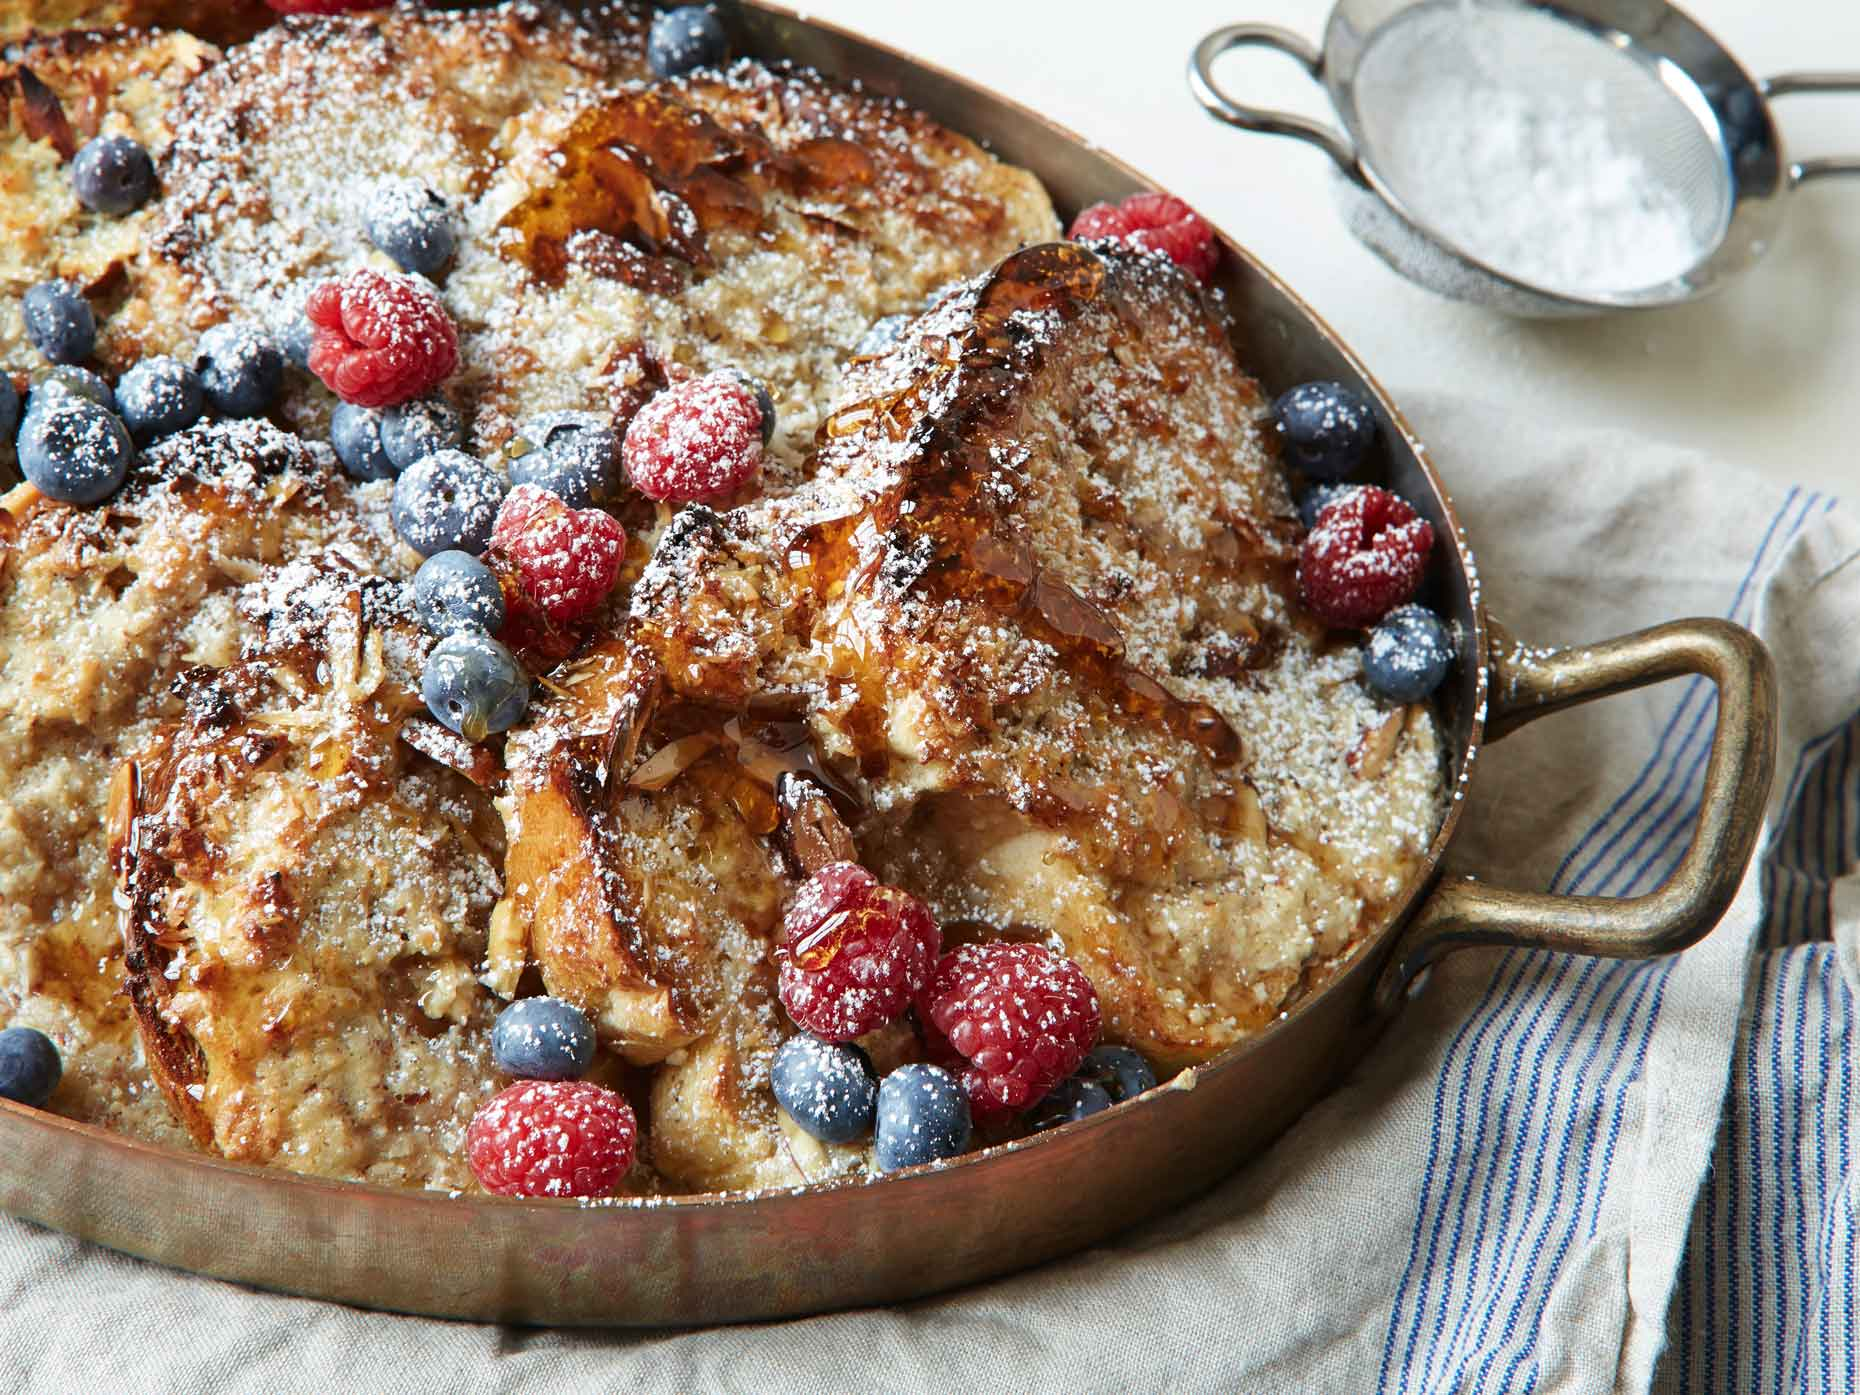 FNK_CoconutAlmondFrenchToastCasserole_H_02_Personal_for_web.jpg